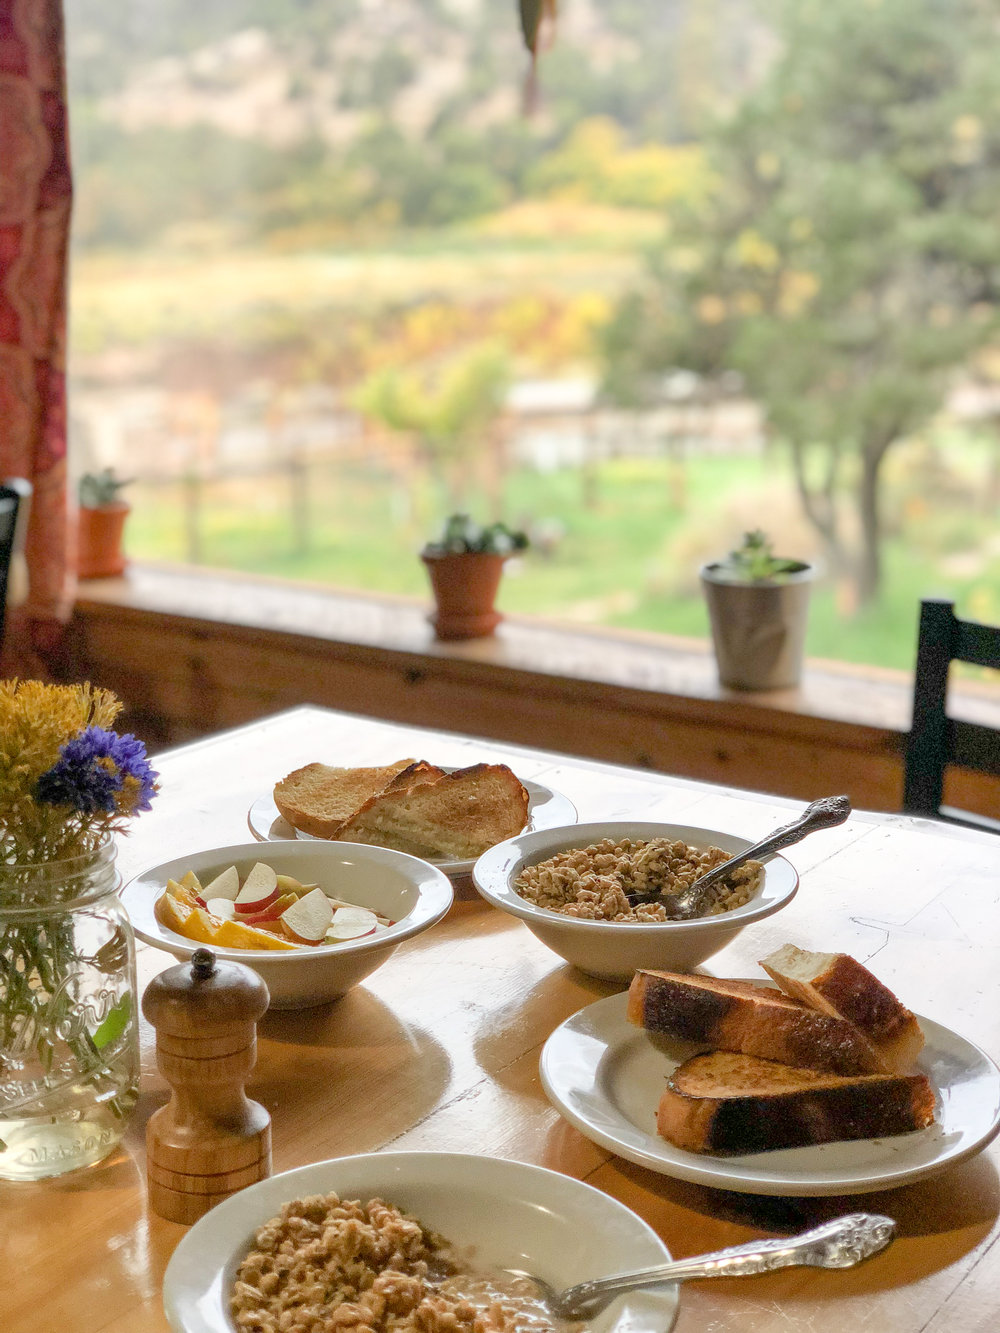 Vegan friendly breakfast with a view of the kitchens garden